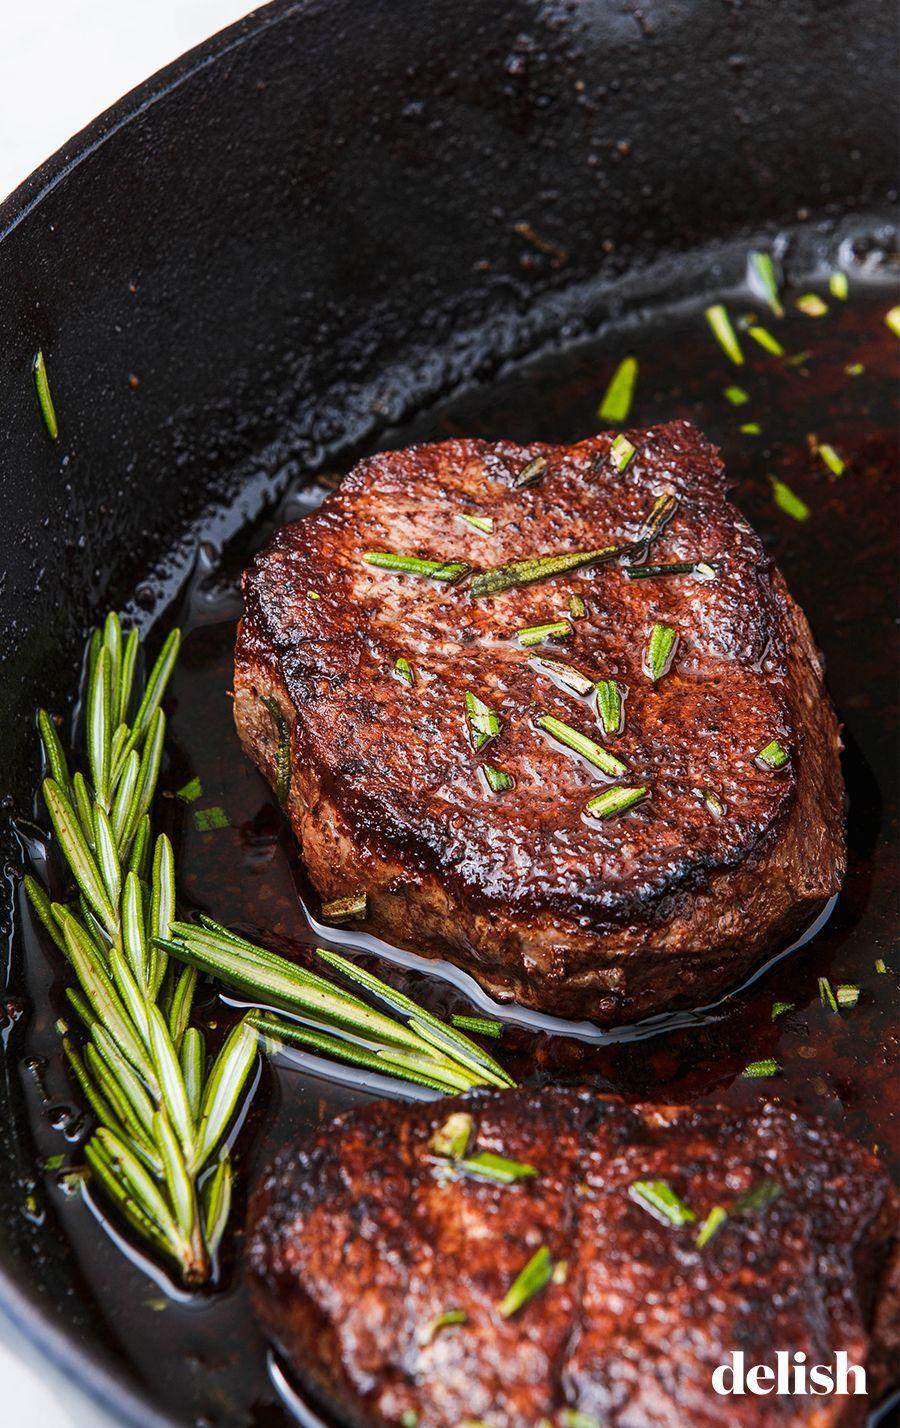 """<p>Ready to feel fancy as f*ck?</p><p>Get the recipe at <a href=""""https://www.delish.com/cooking/recipe-ideas/a23515113/how-to-cook-filet-mignon/"""" rel=""""nofollow noopener"""" target=""""_blank"""" data-ylk=""""slk:Delish"""" class=""""link rapid-noclick-resp"""">Delish</a>.</p>"""